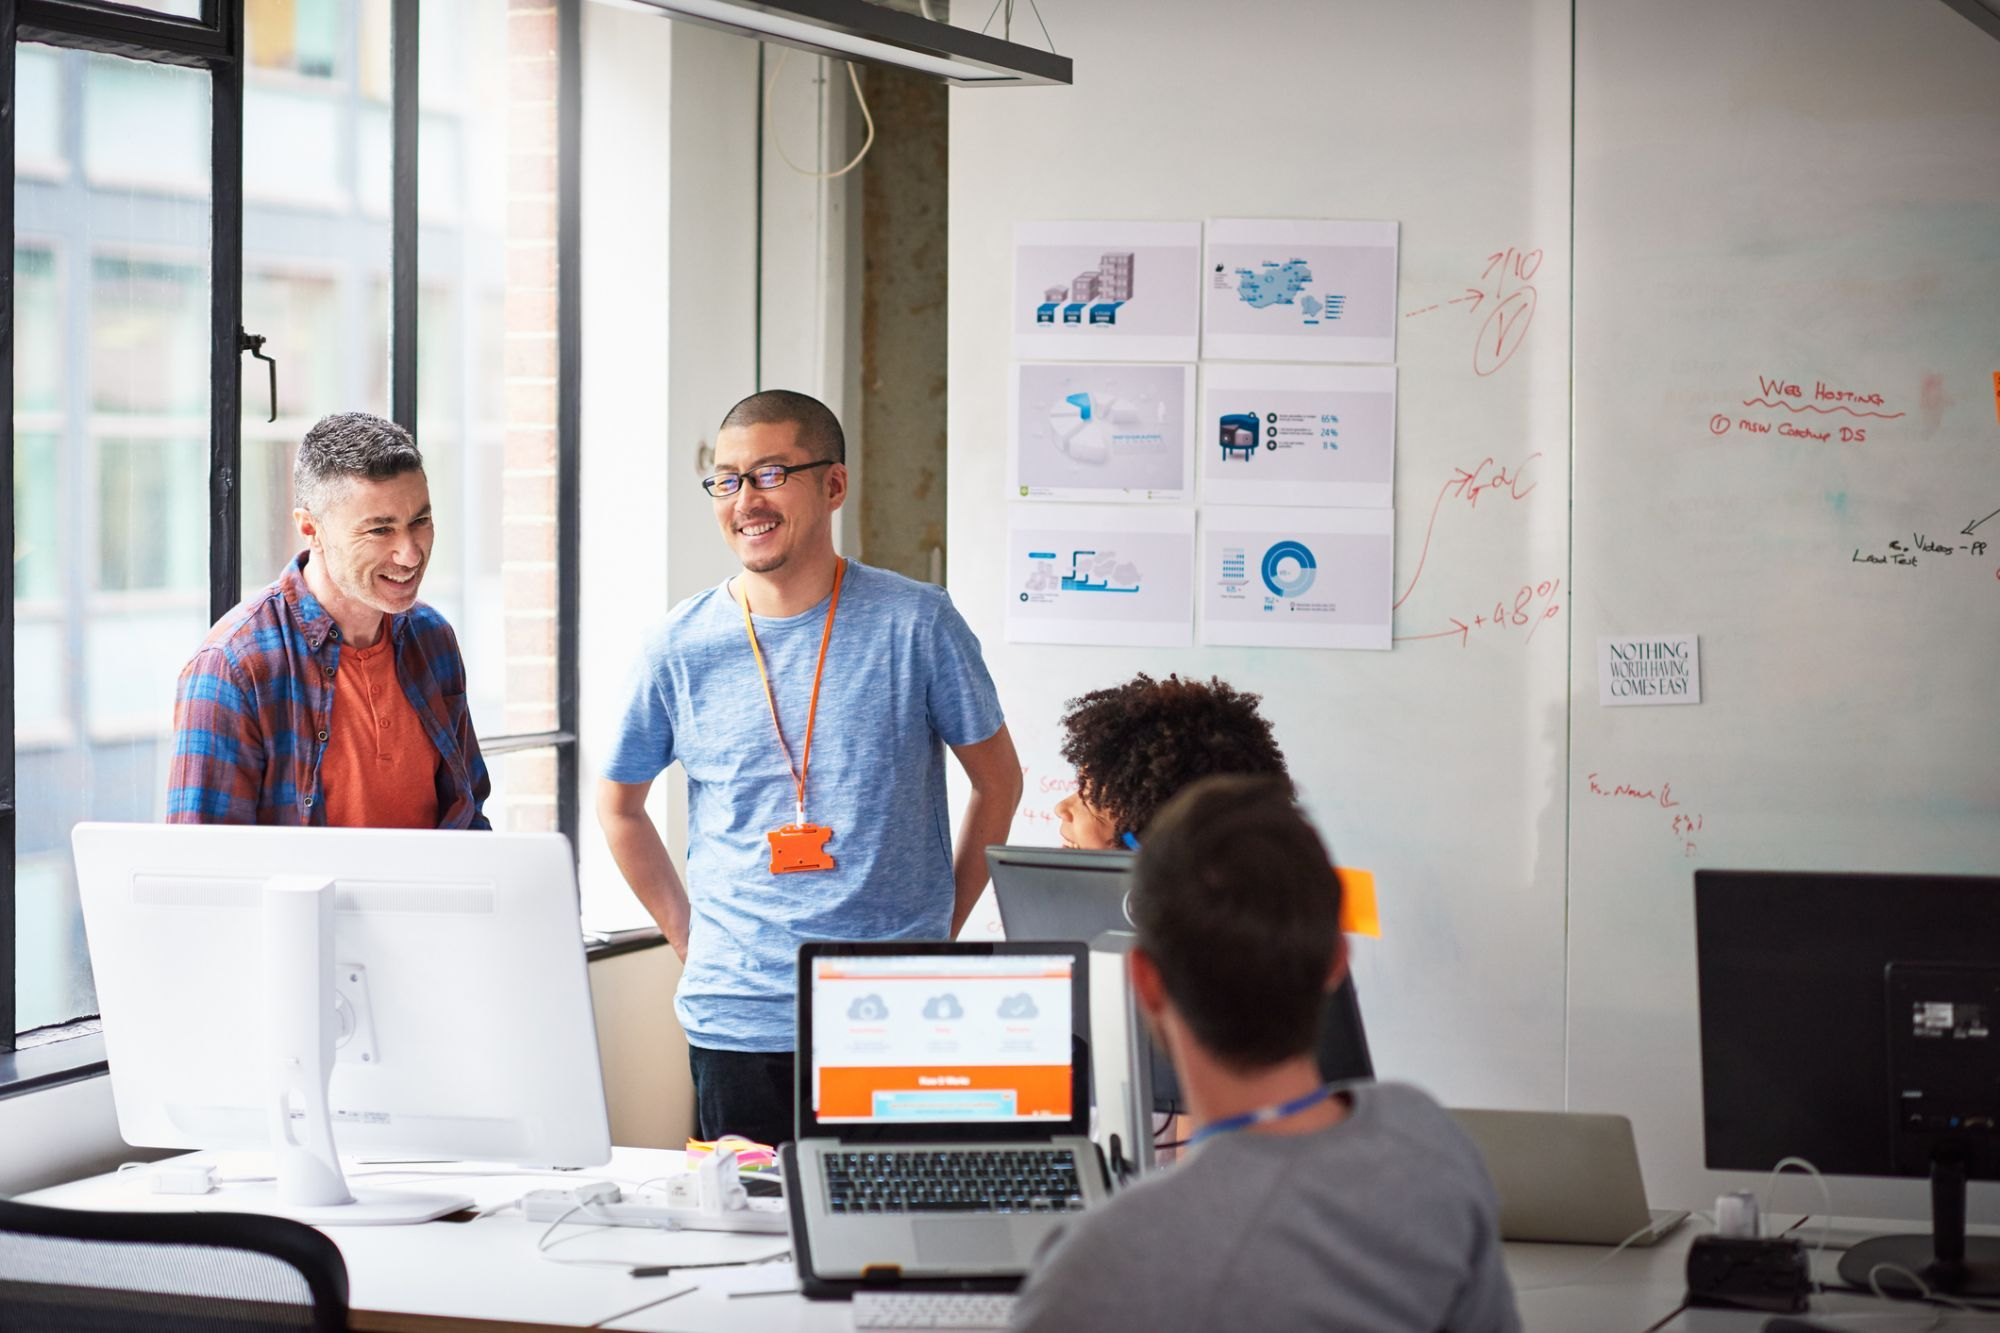 6 Reasons Why You Should Prototype Your Idea Before